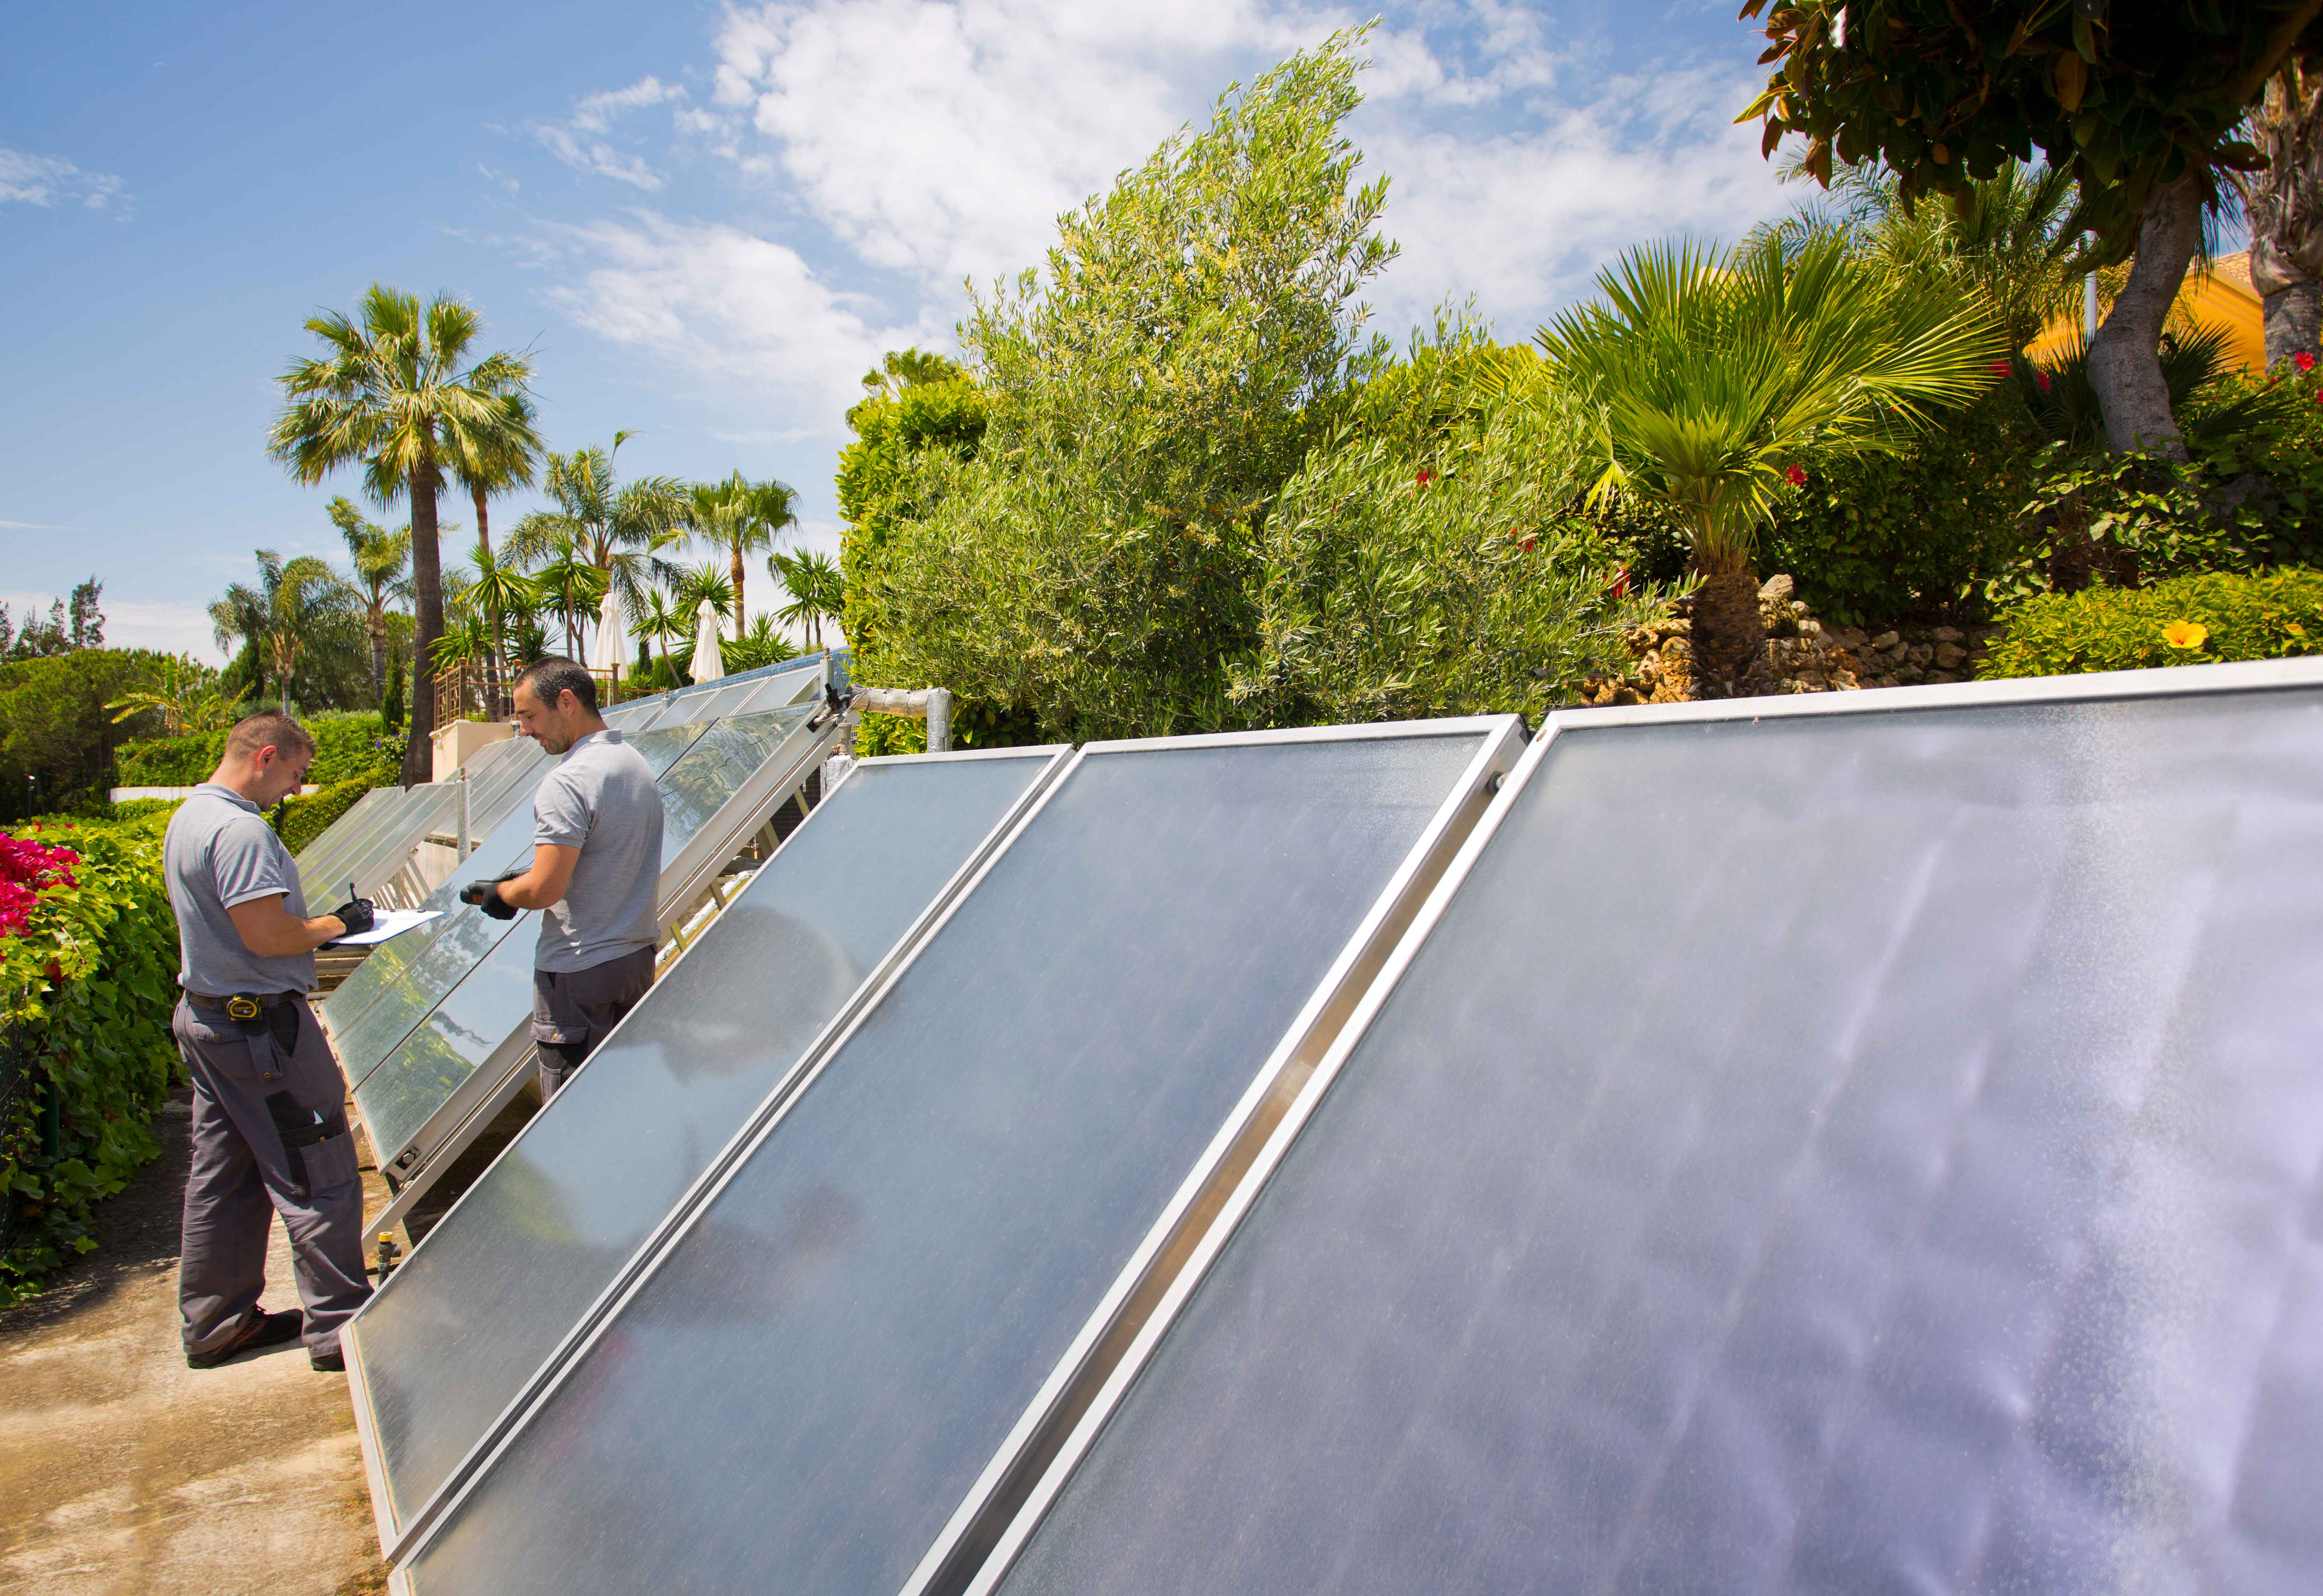 Solar thermal data collection